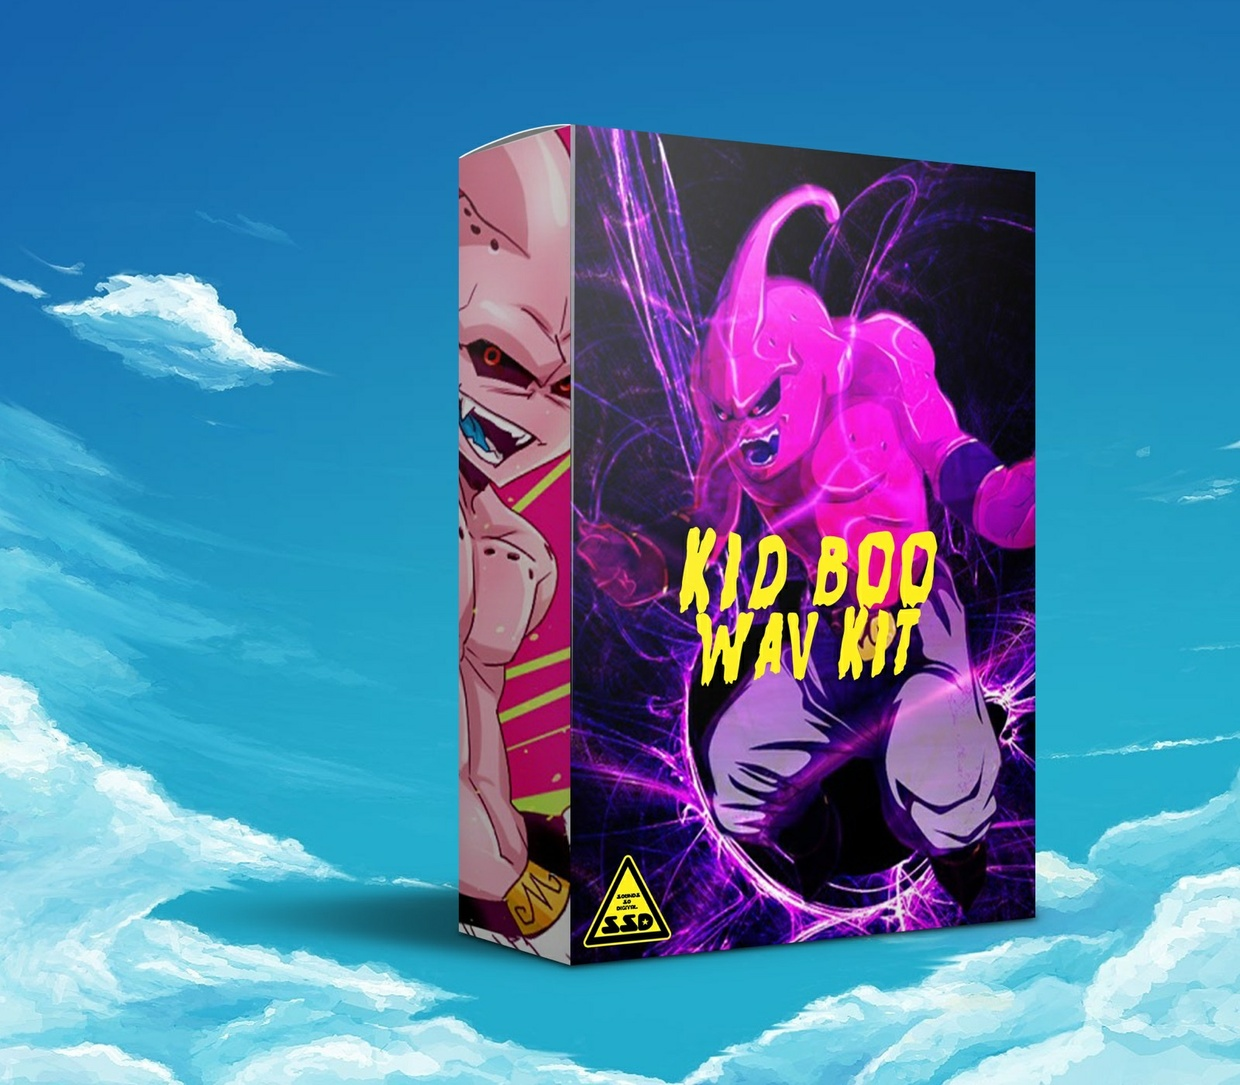 """Sounds So Digital: """"Kid Boo Wav  Drum Kit"""" with midi construction kit included!***FREE***"""